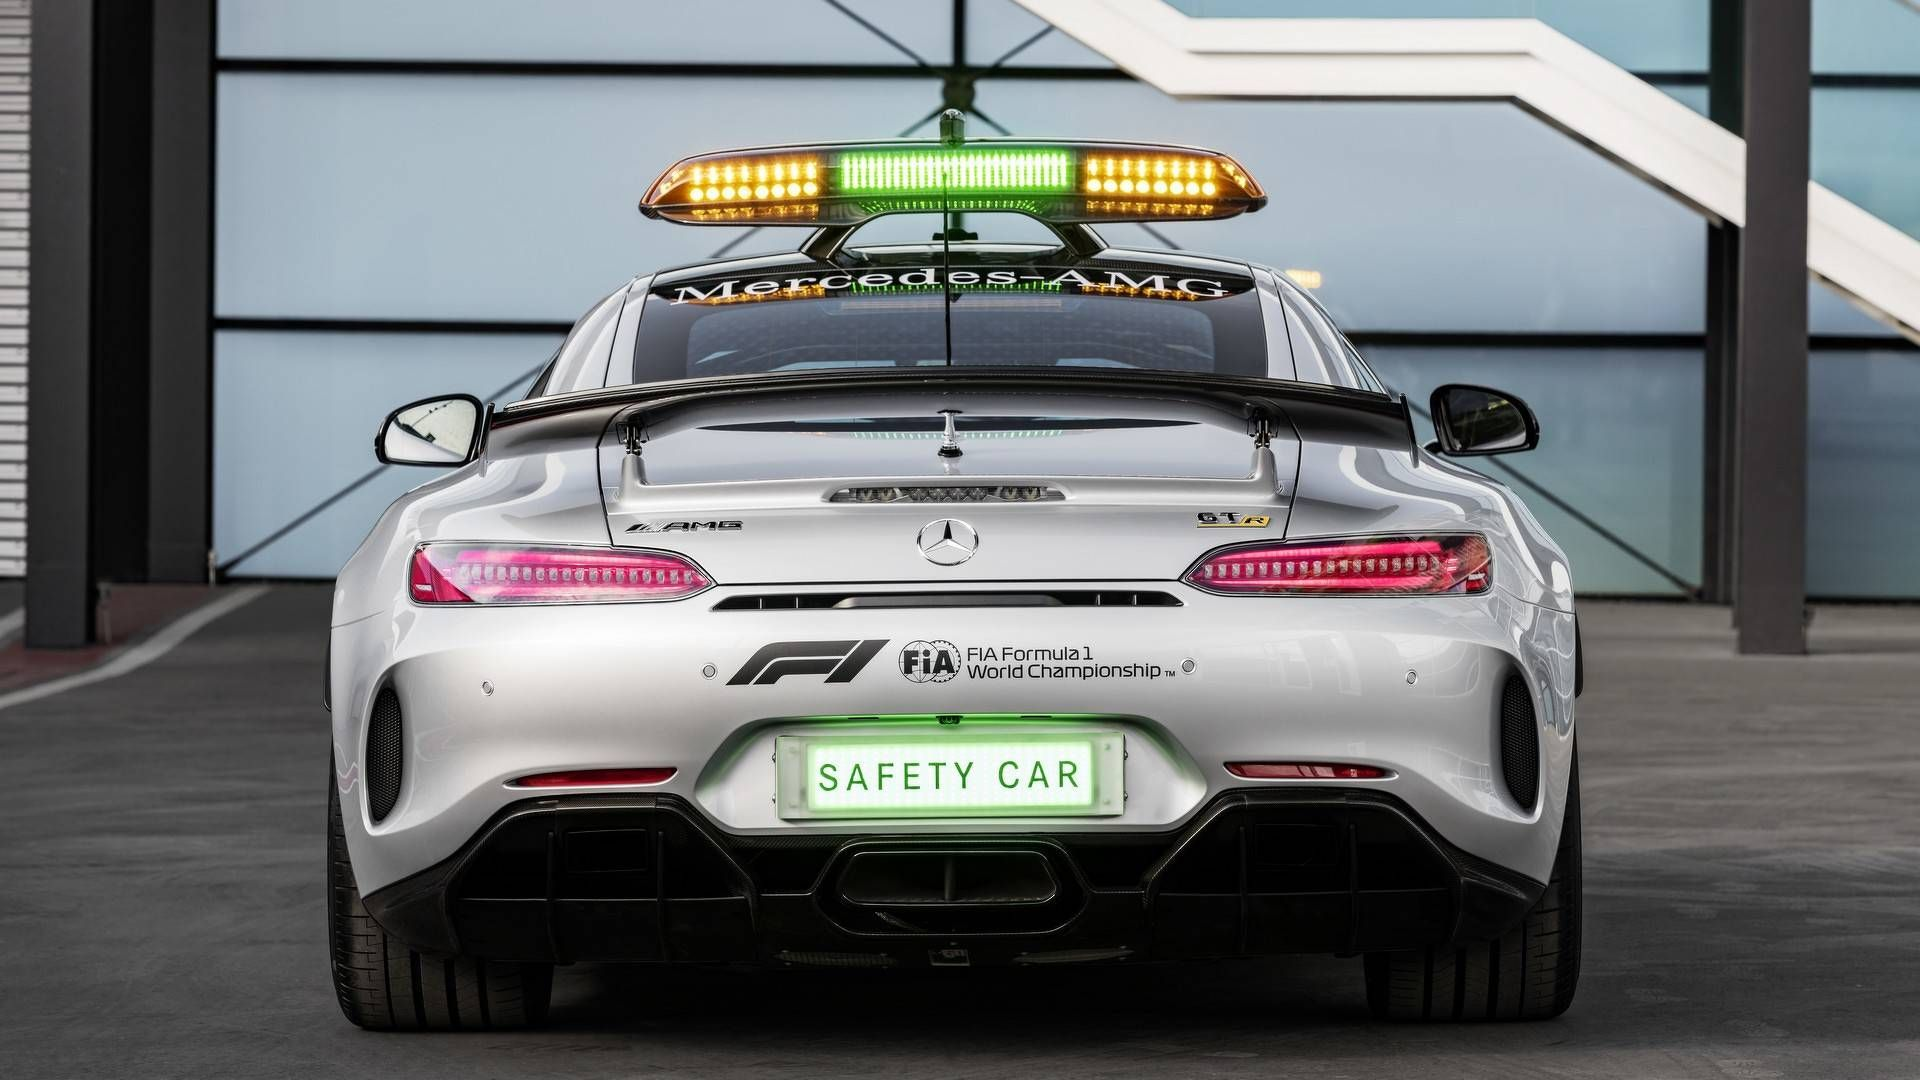 MercedesAMG GT R Revealed As The Most Powerful F1 Safety